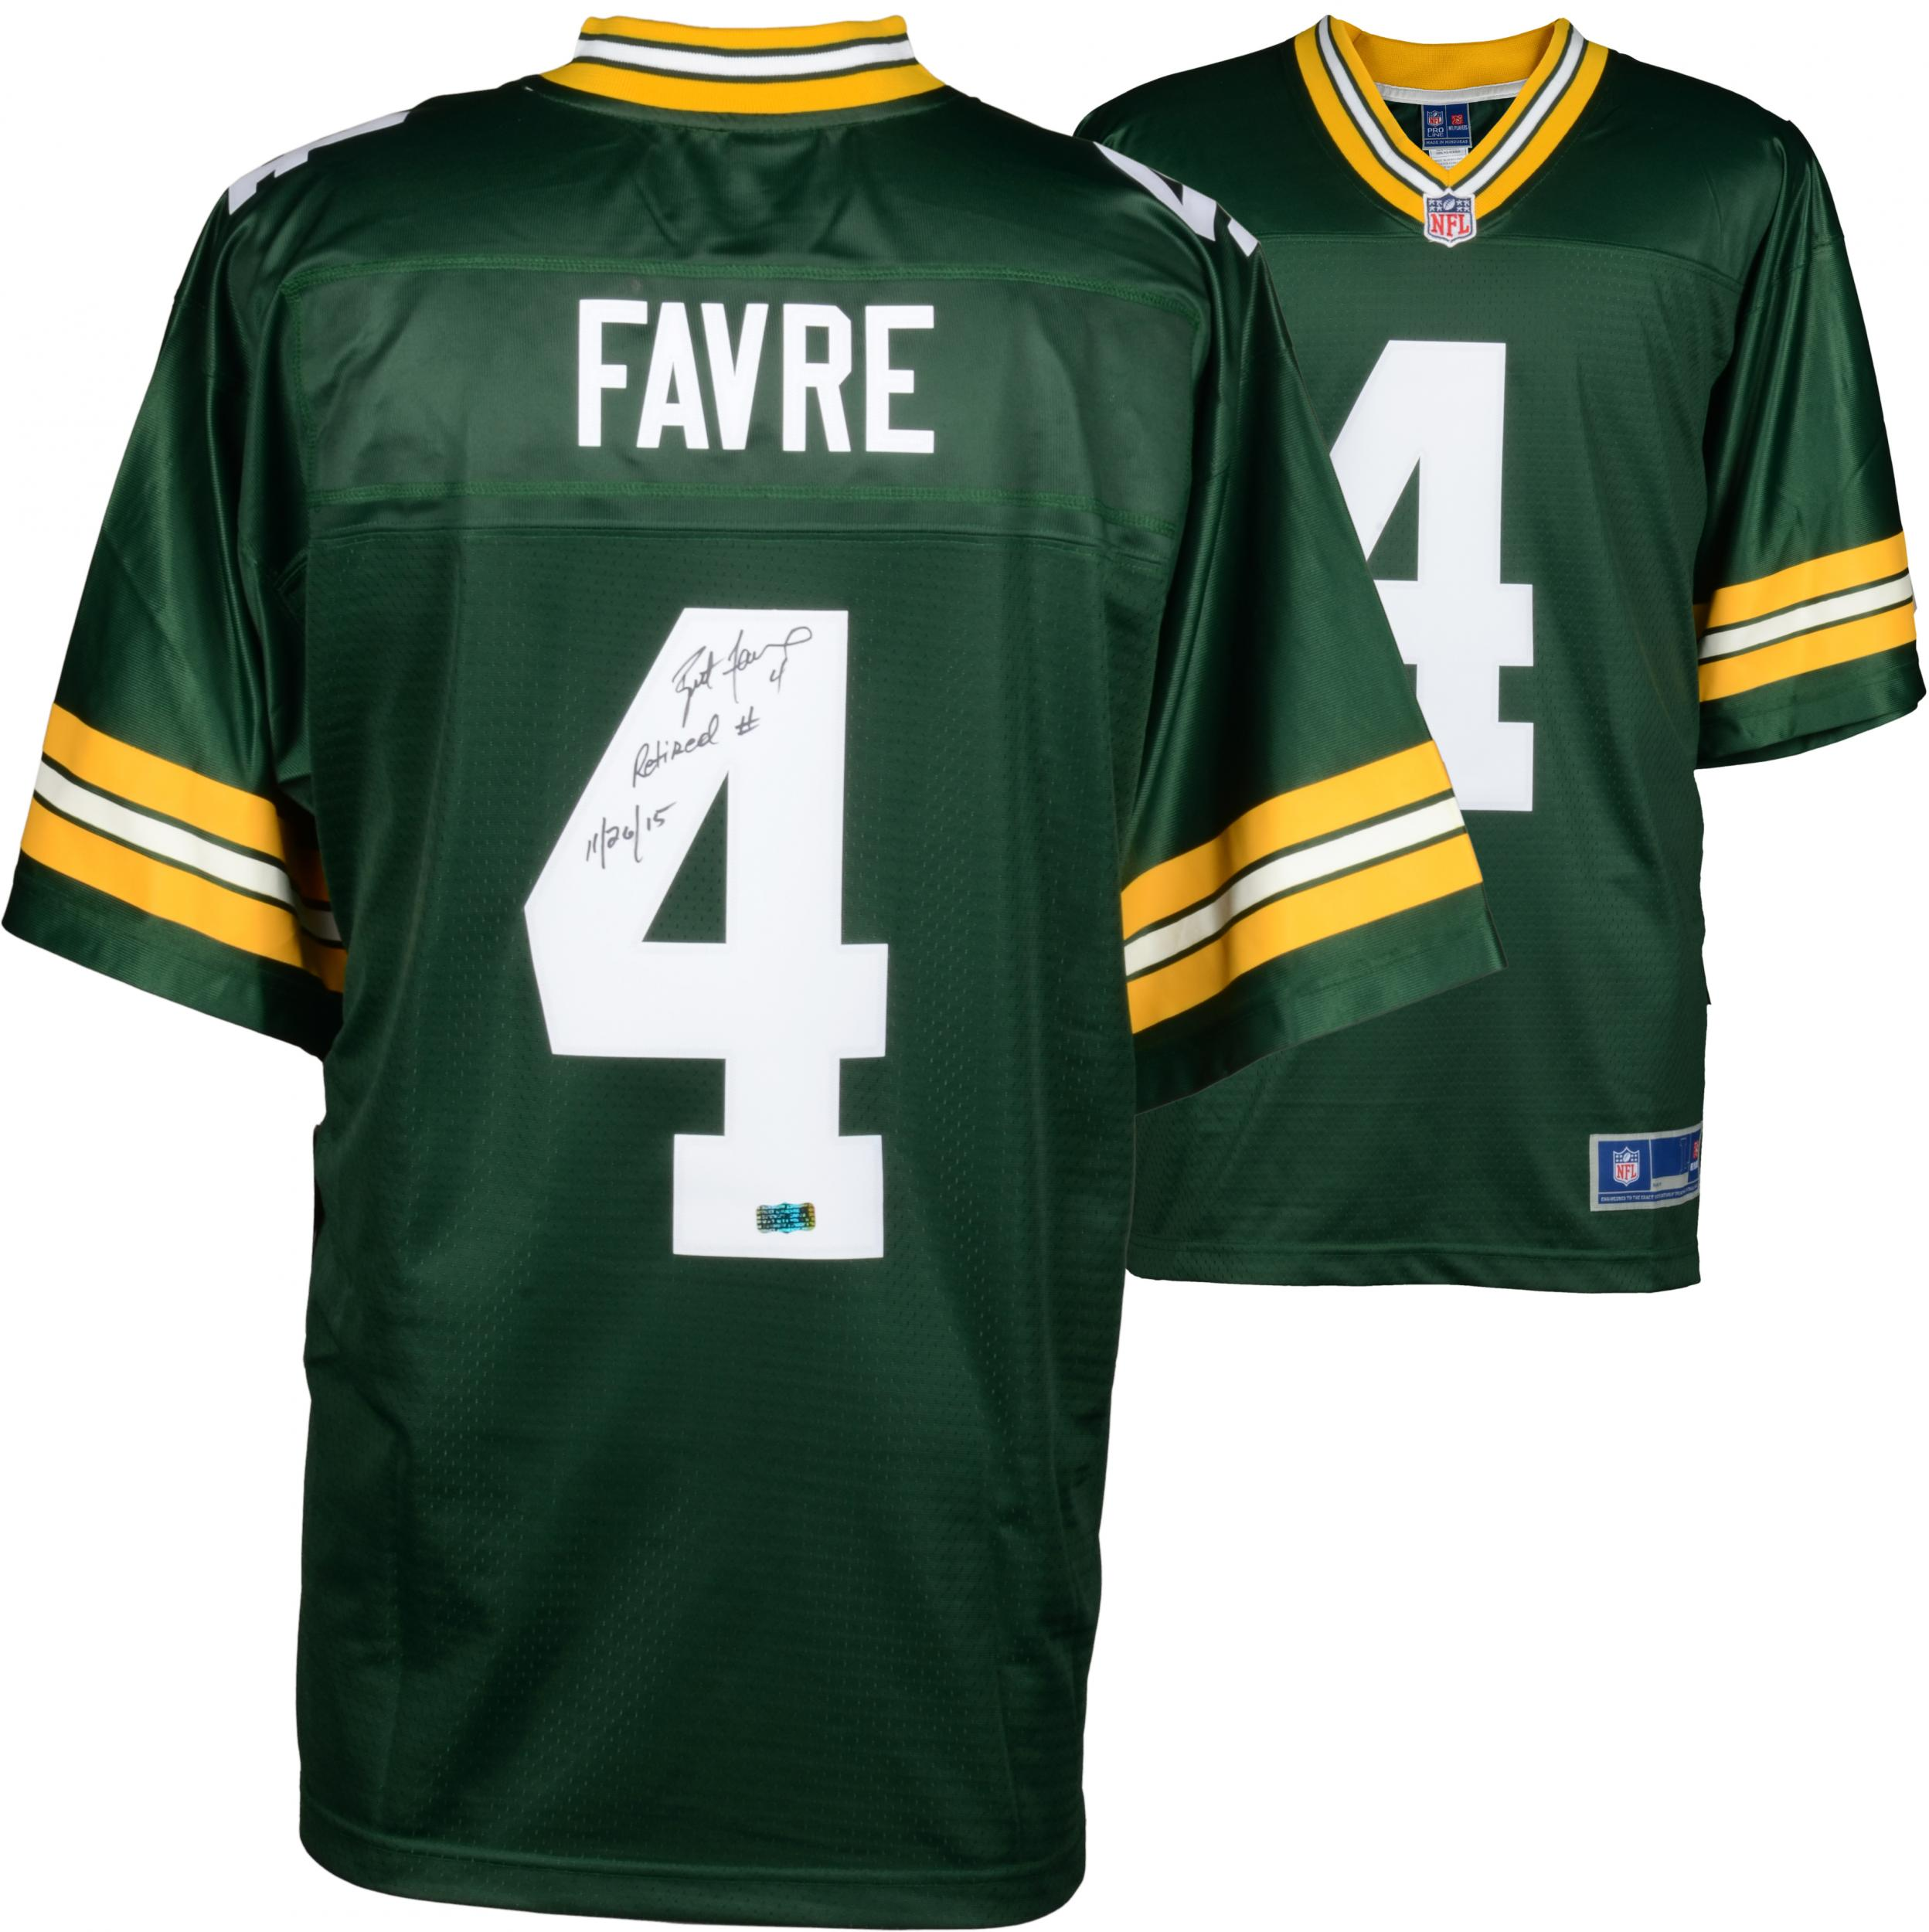 Brett Favre Green Bay Packers Autographed Green Authentic Jersey with Retired Number 11/26/15 Inscription - Fanatics Authentic Certified